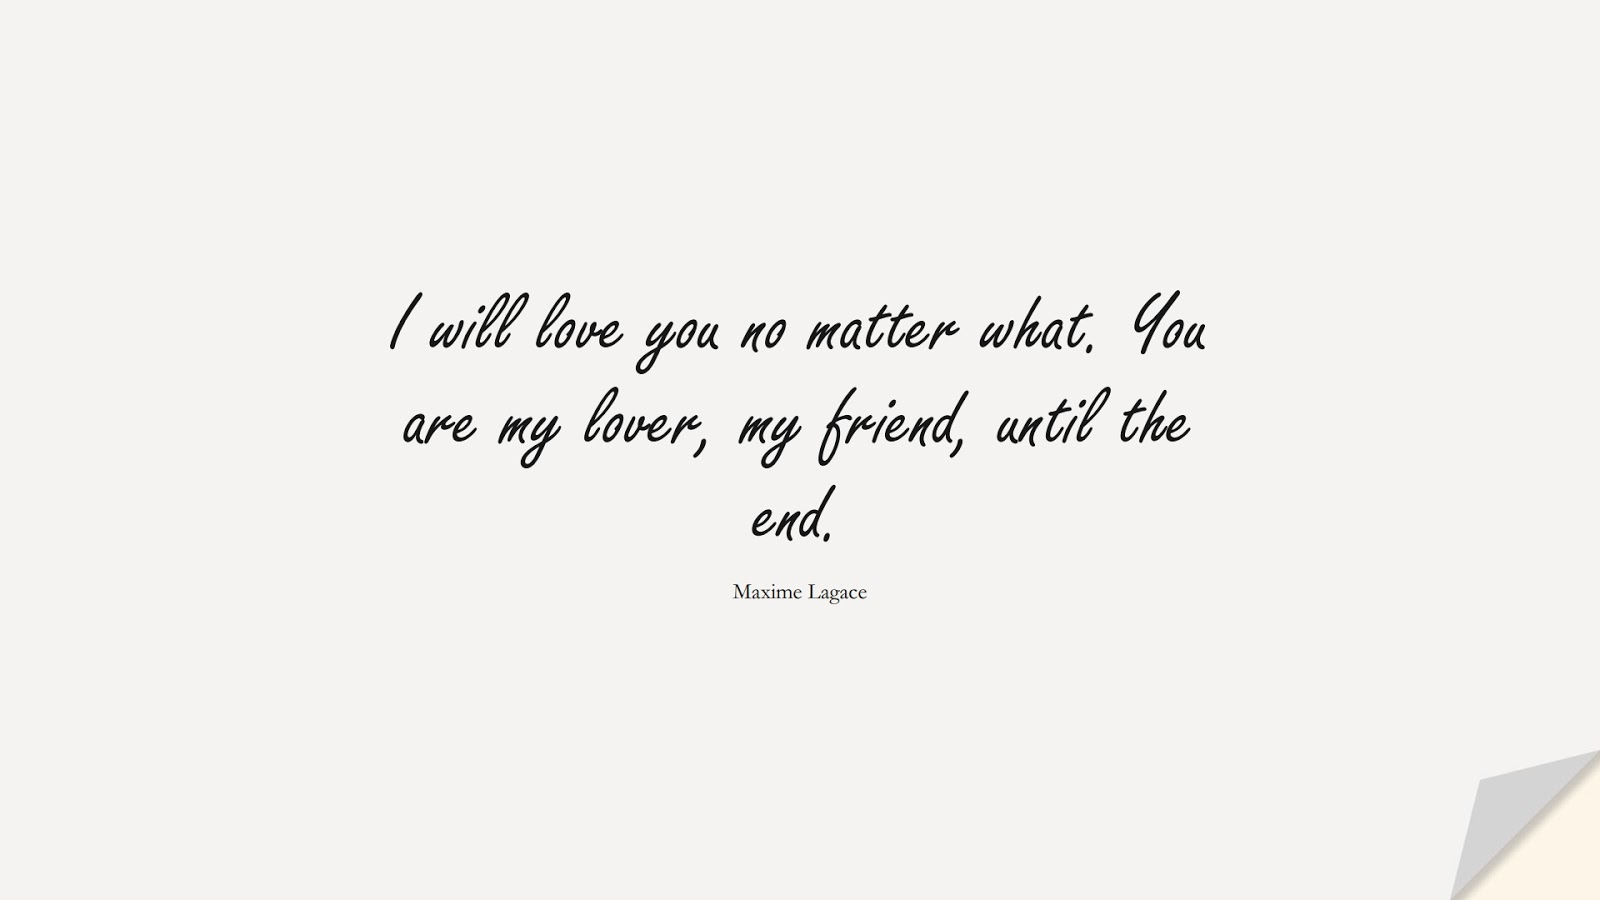 I will love you no matter what. You are my lover, my friend, until the end. (Maxime Lagace);  #LoveQuotes